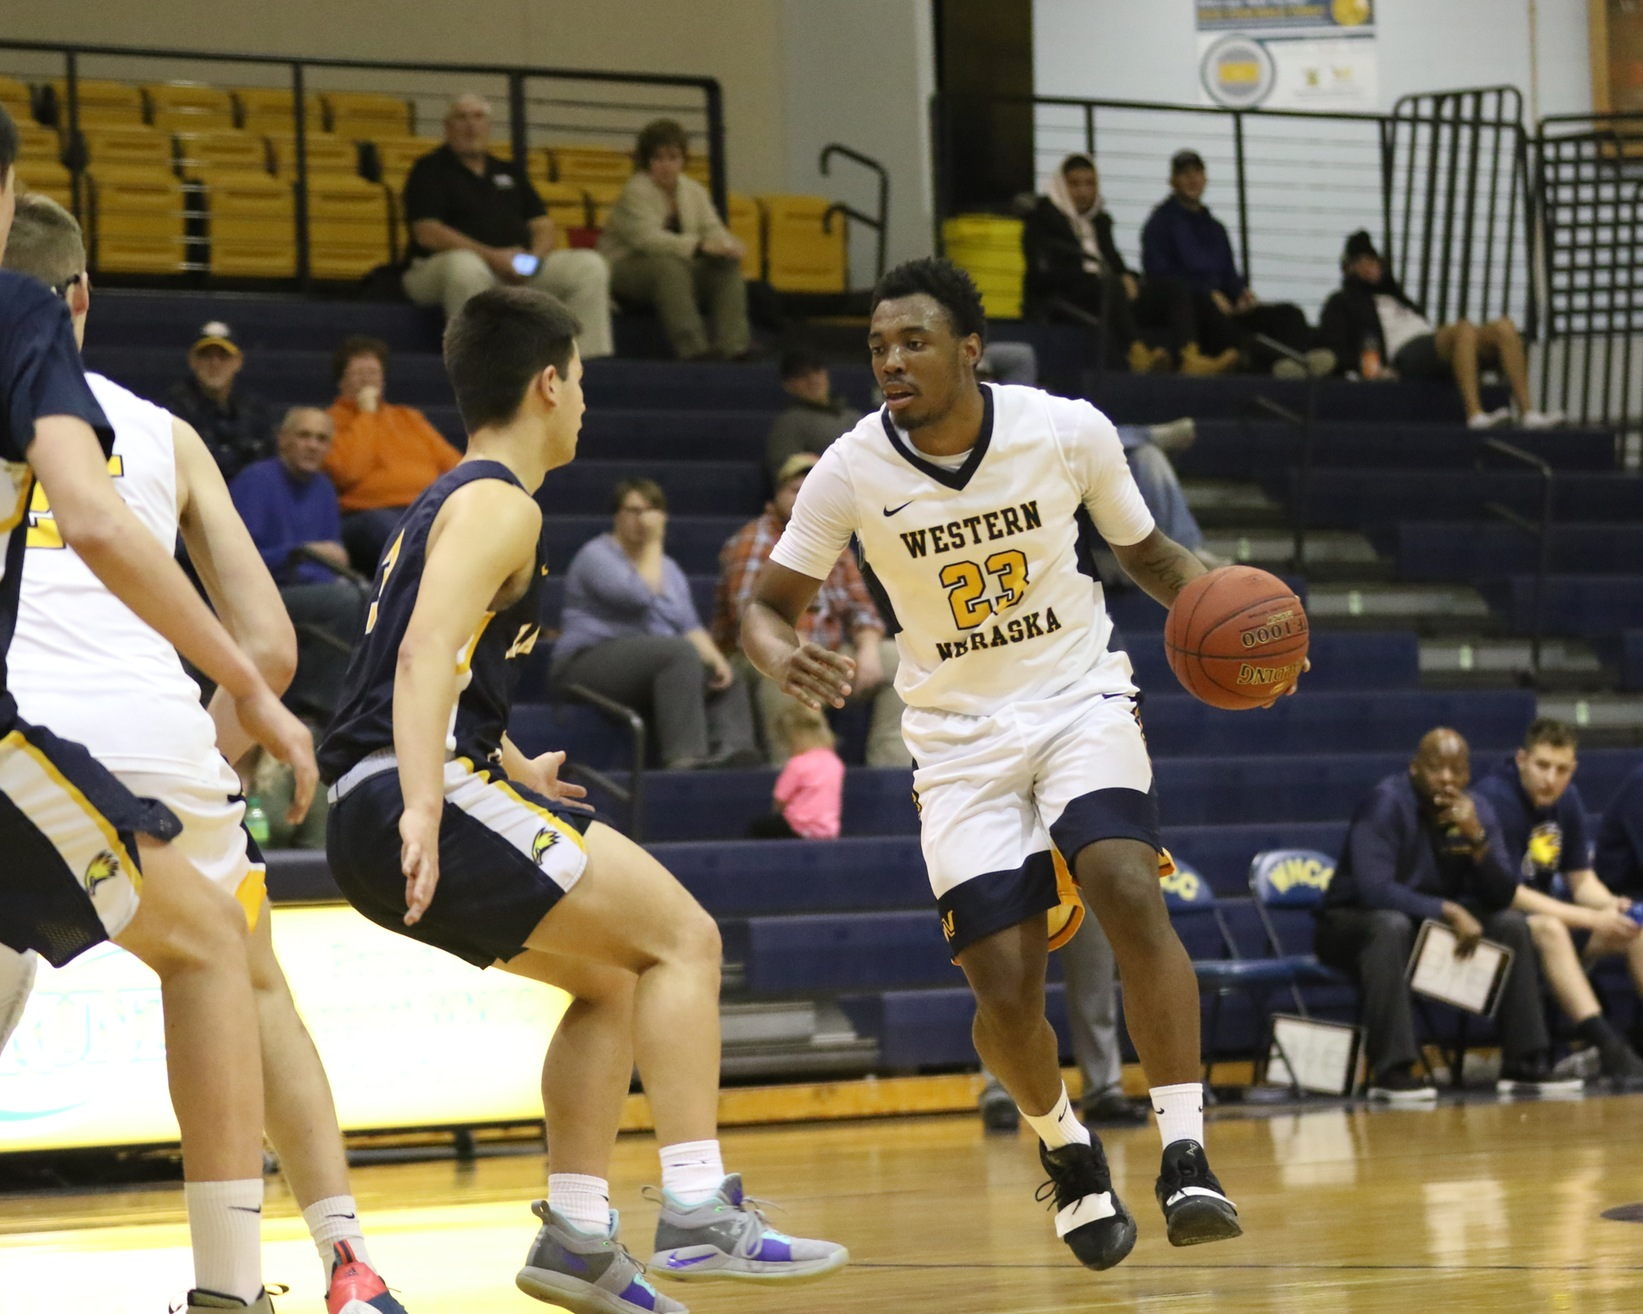 WNCC falls to LCCC on a buzzer-beater